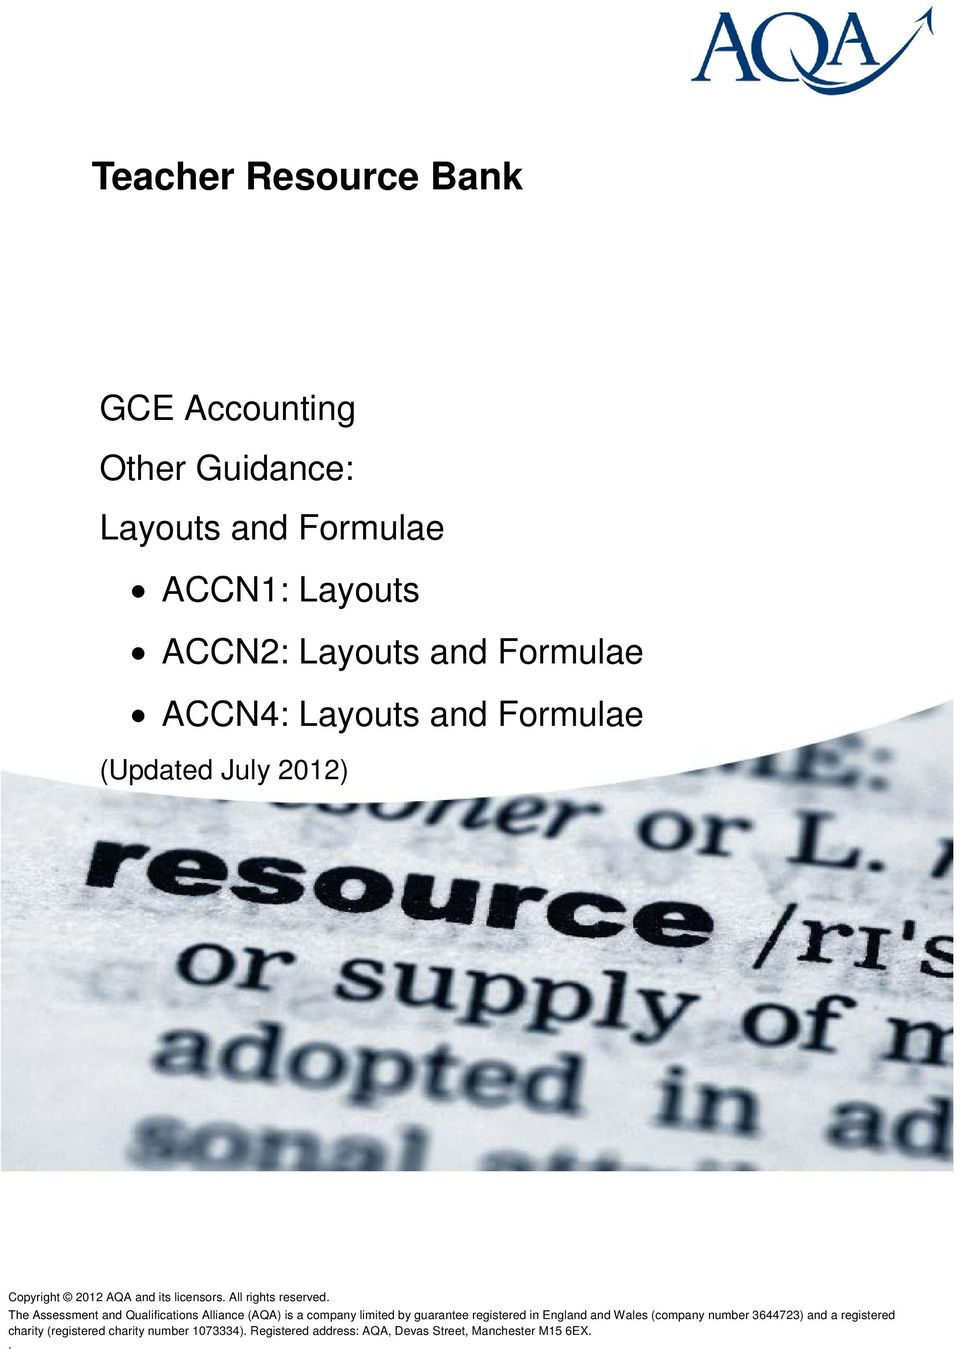 (AQA) is a company limited by guarantee registered in England and Wales (company number 3644723) and a